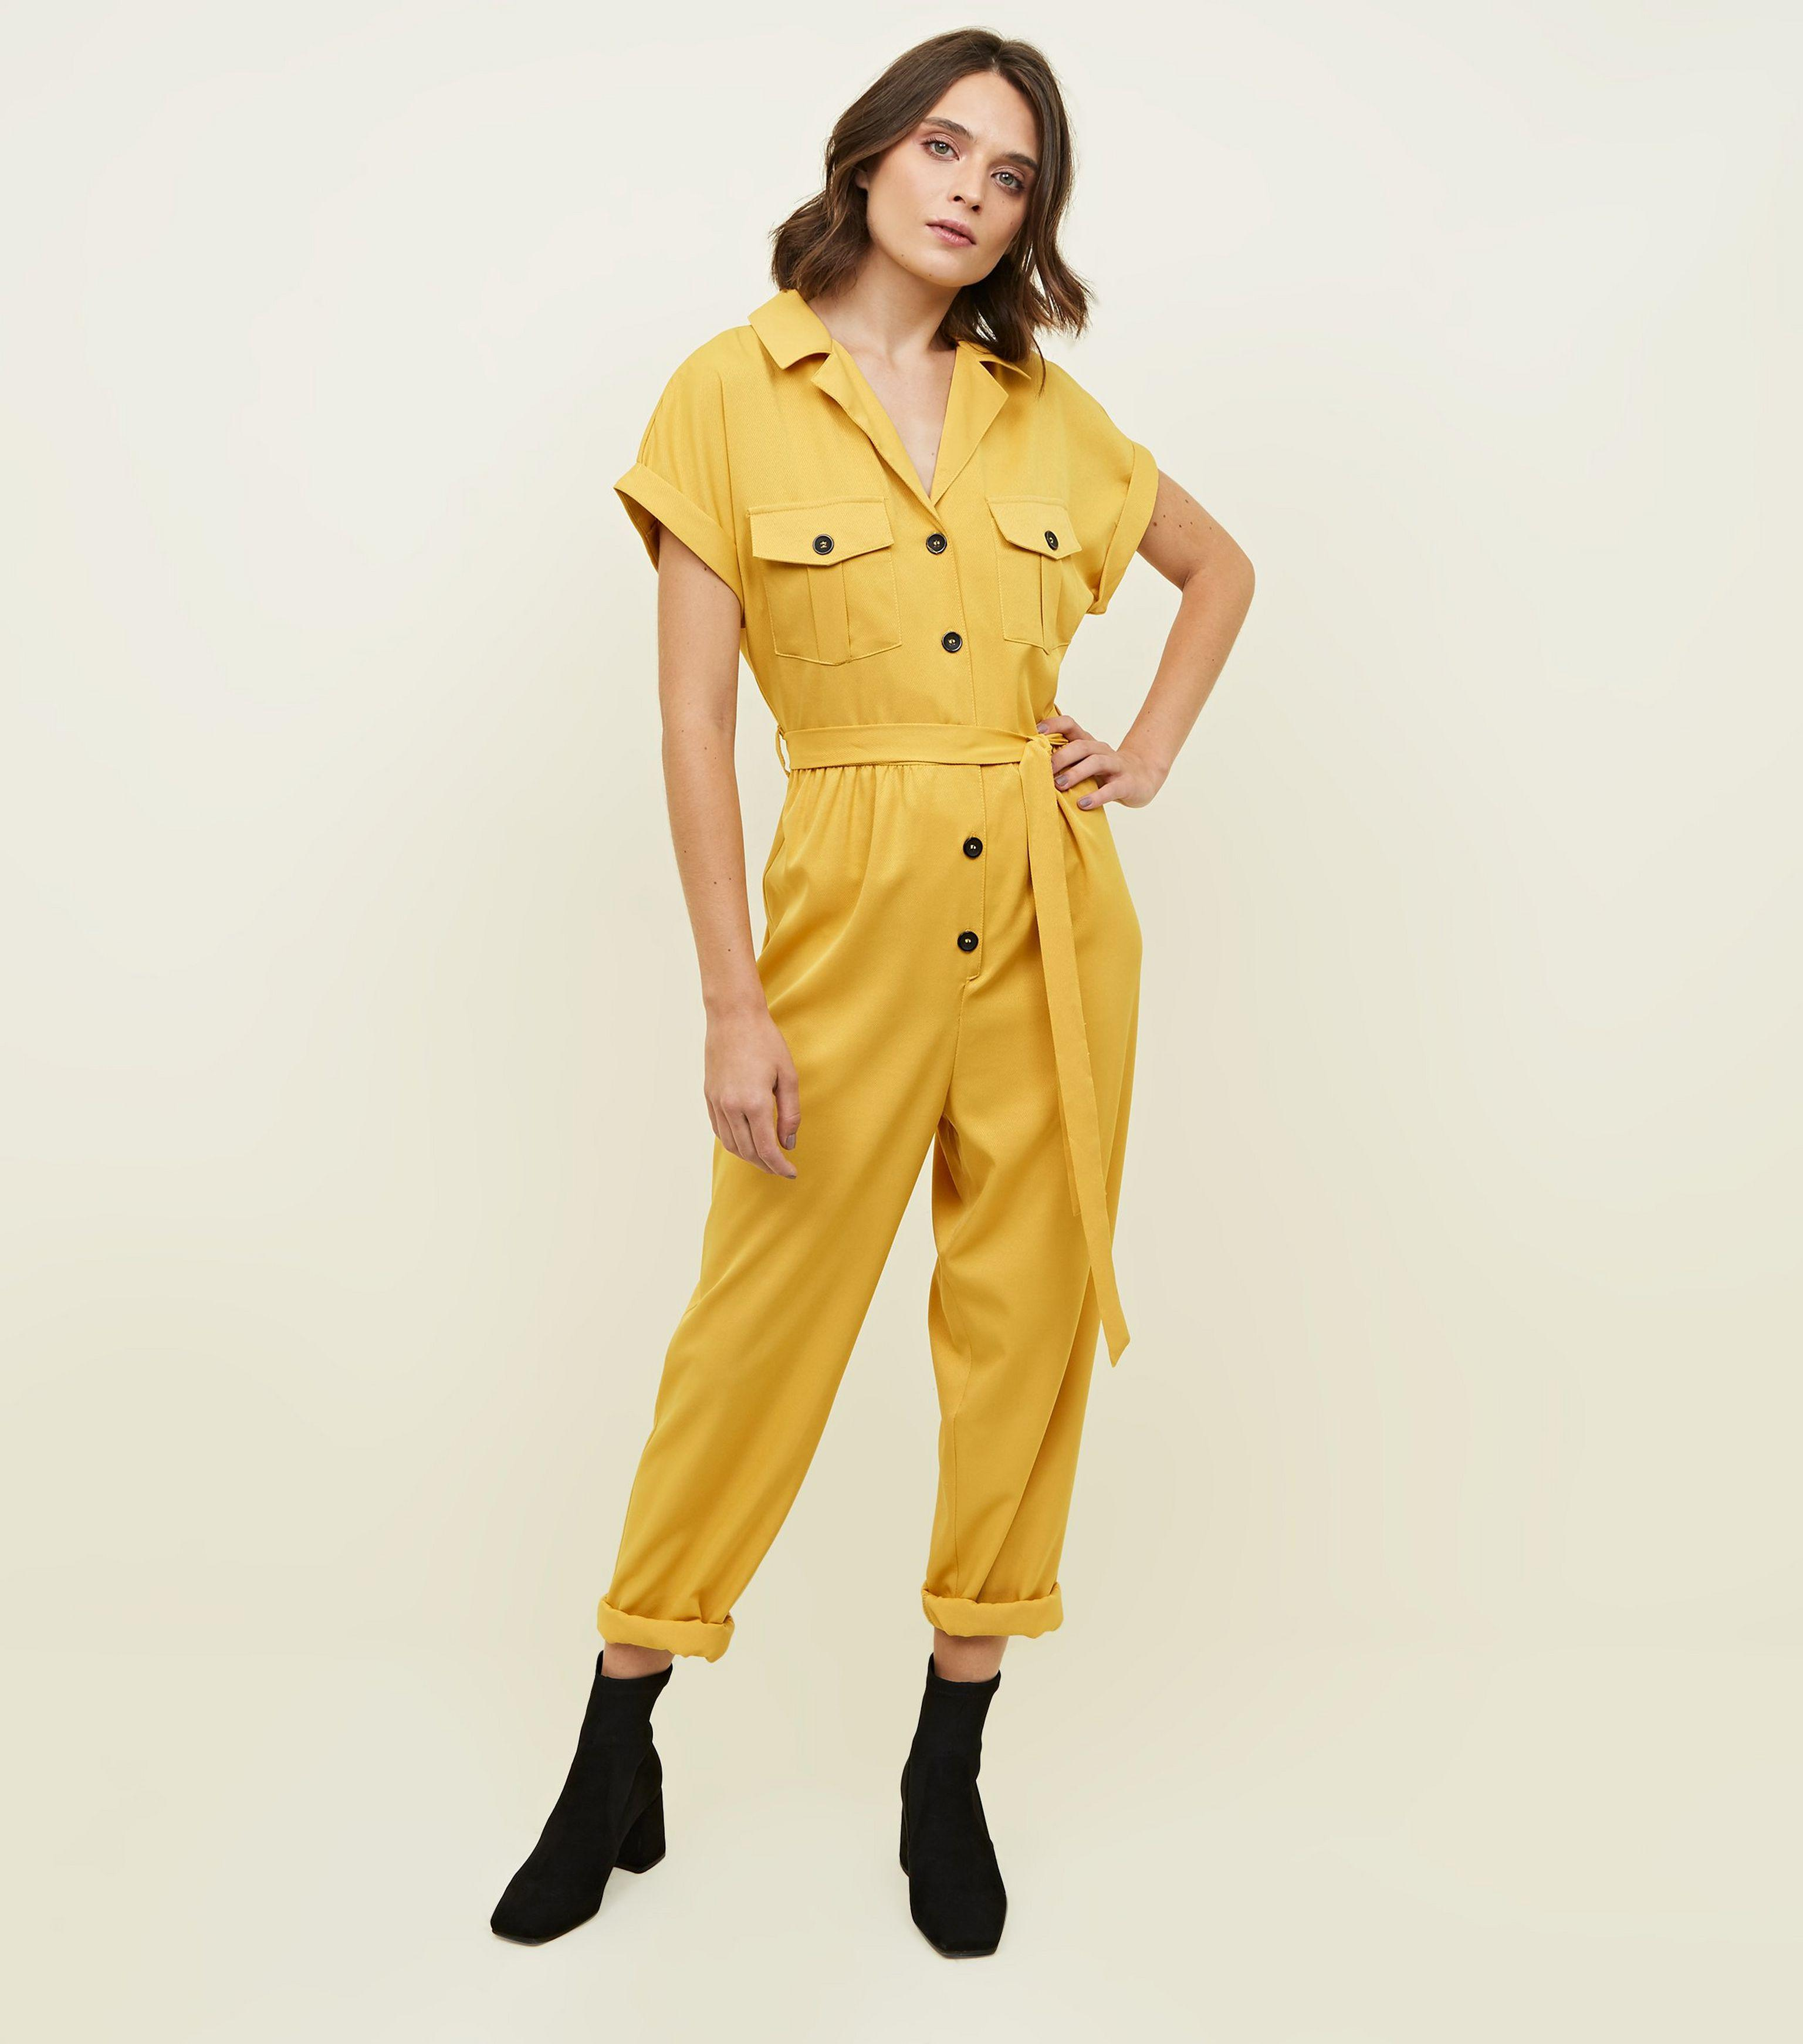 e3b27c8b1f50 New Look Mustard Twill Button Front Utility Jumpsuit in Yellow - Lyst